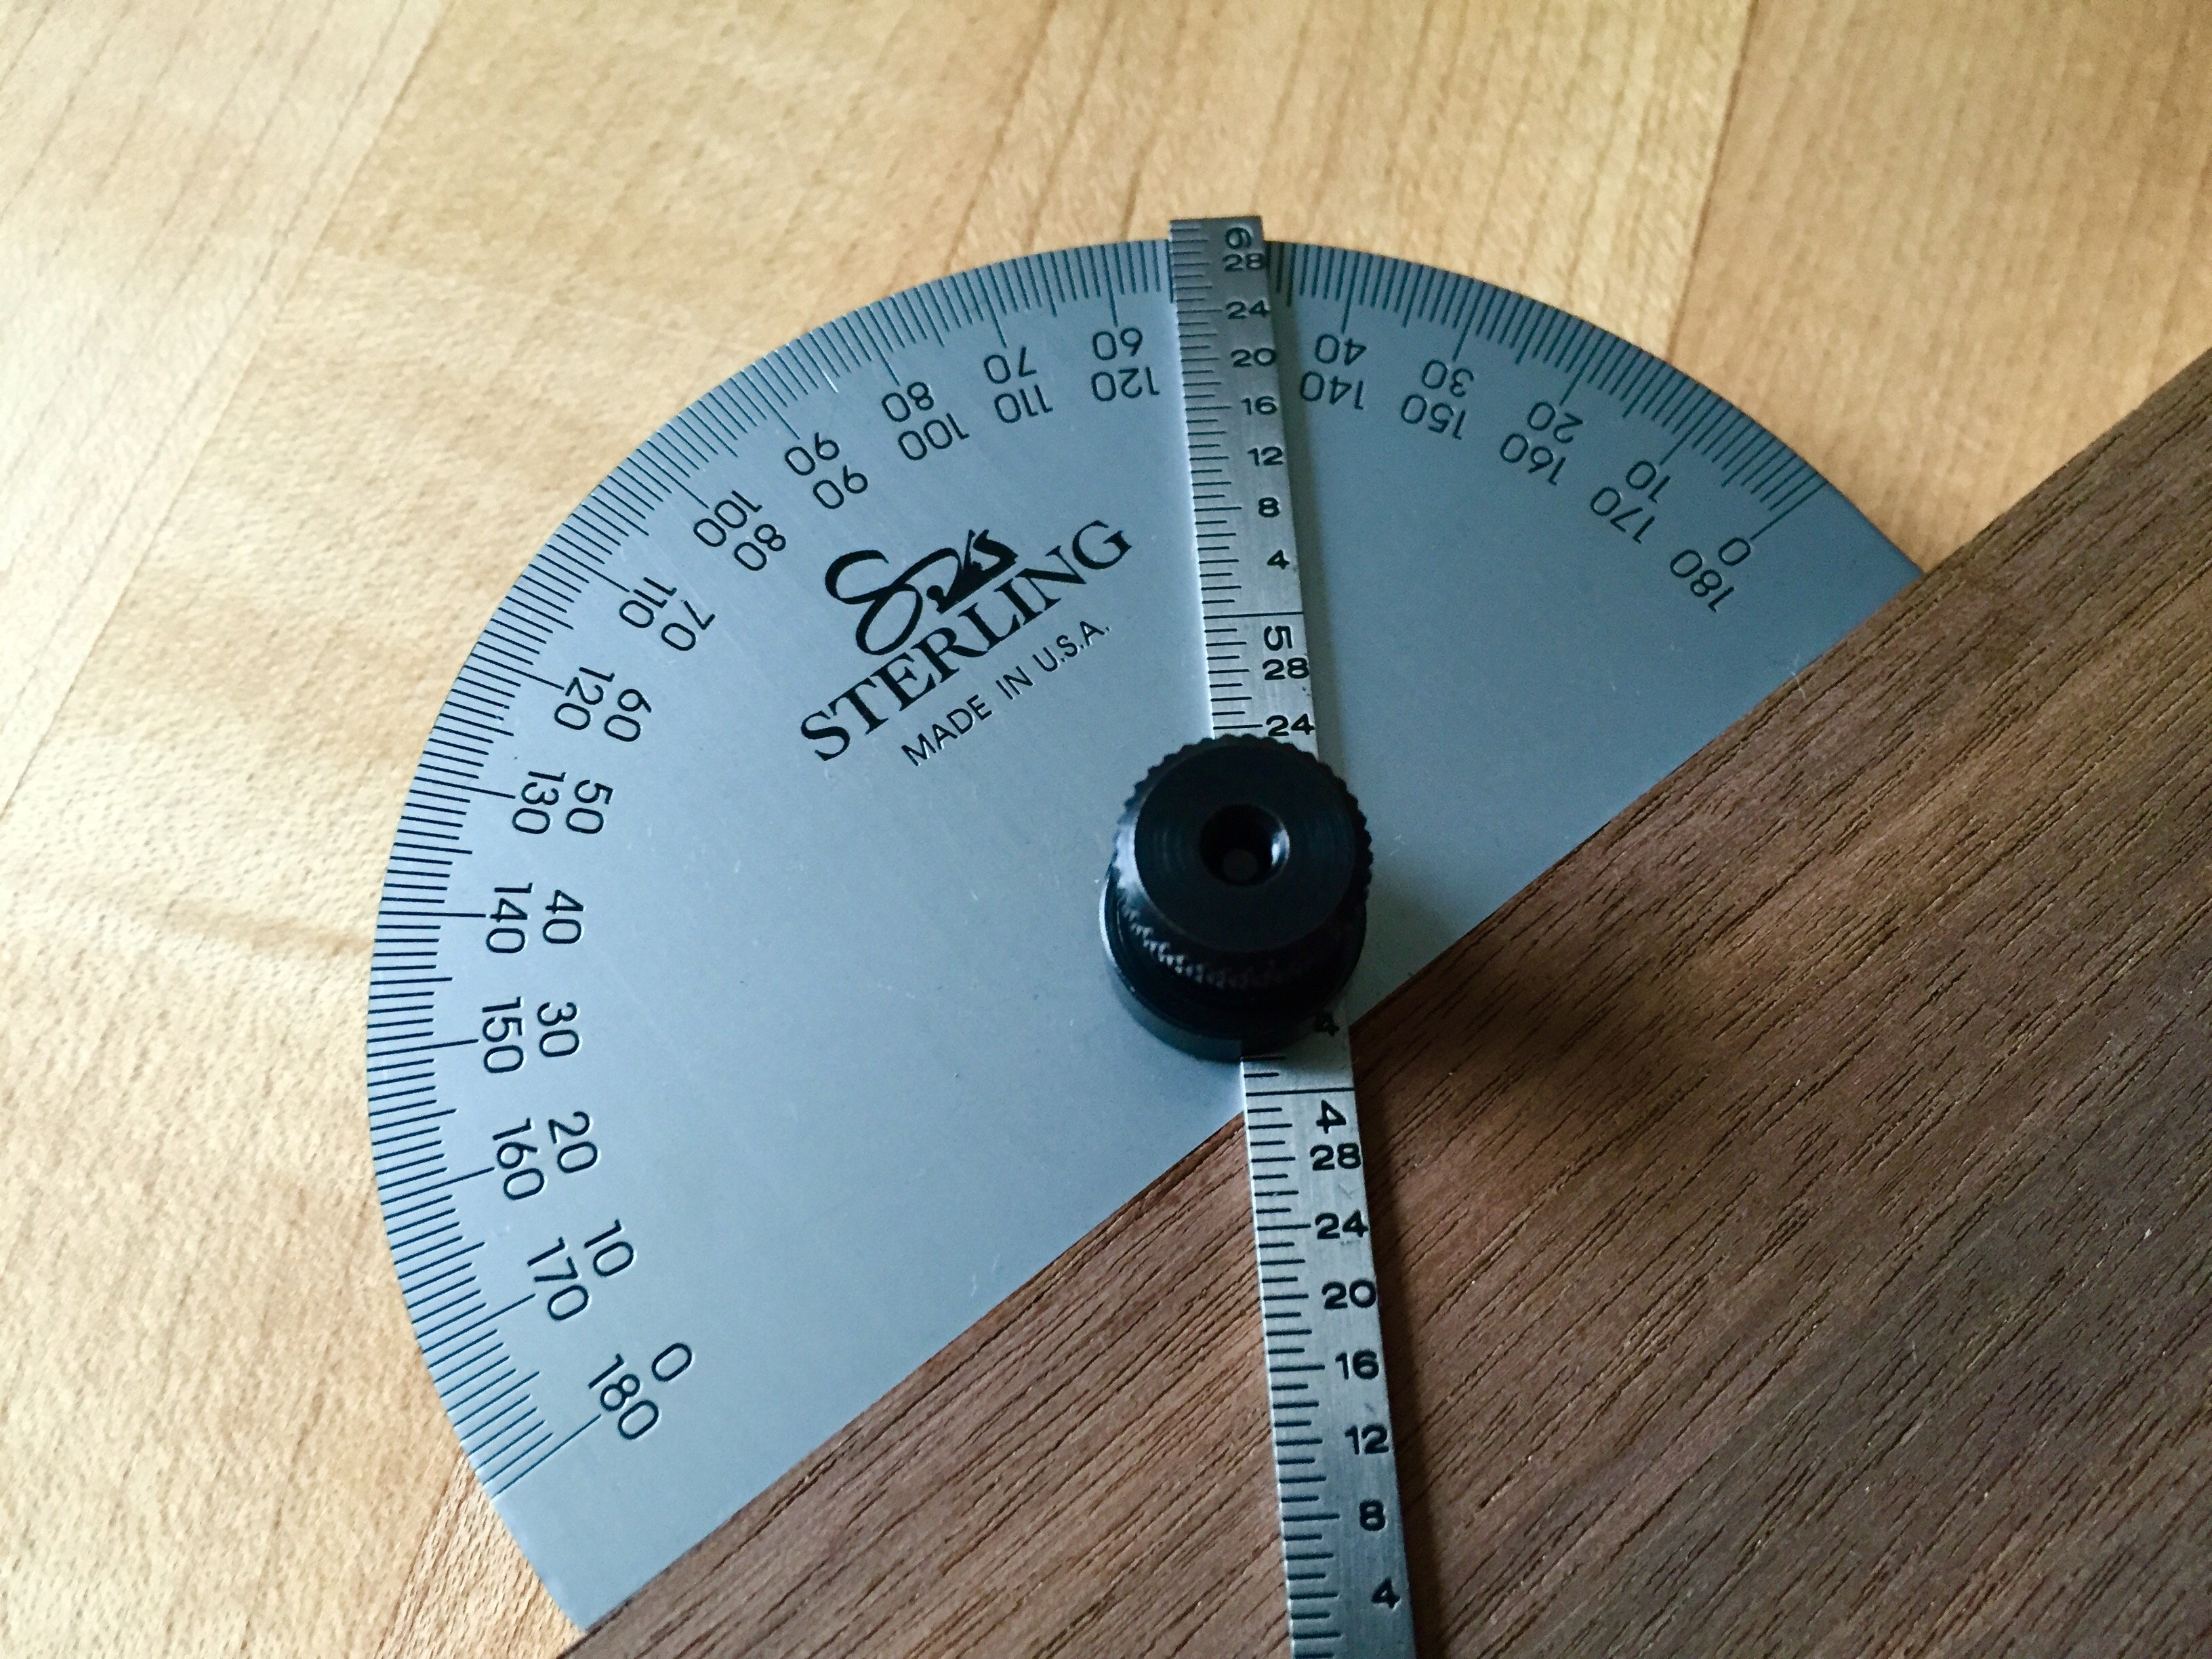 Announcing The Sterling Tool Works Precision Protractor